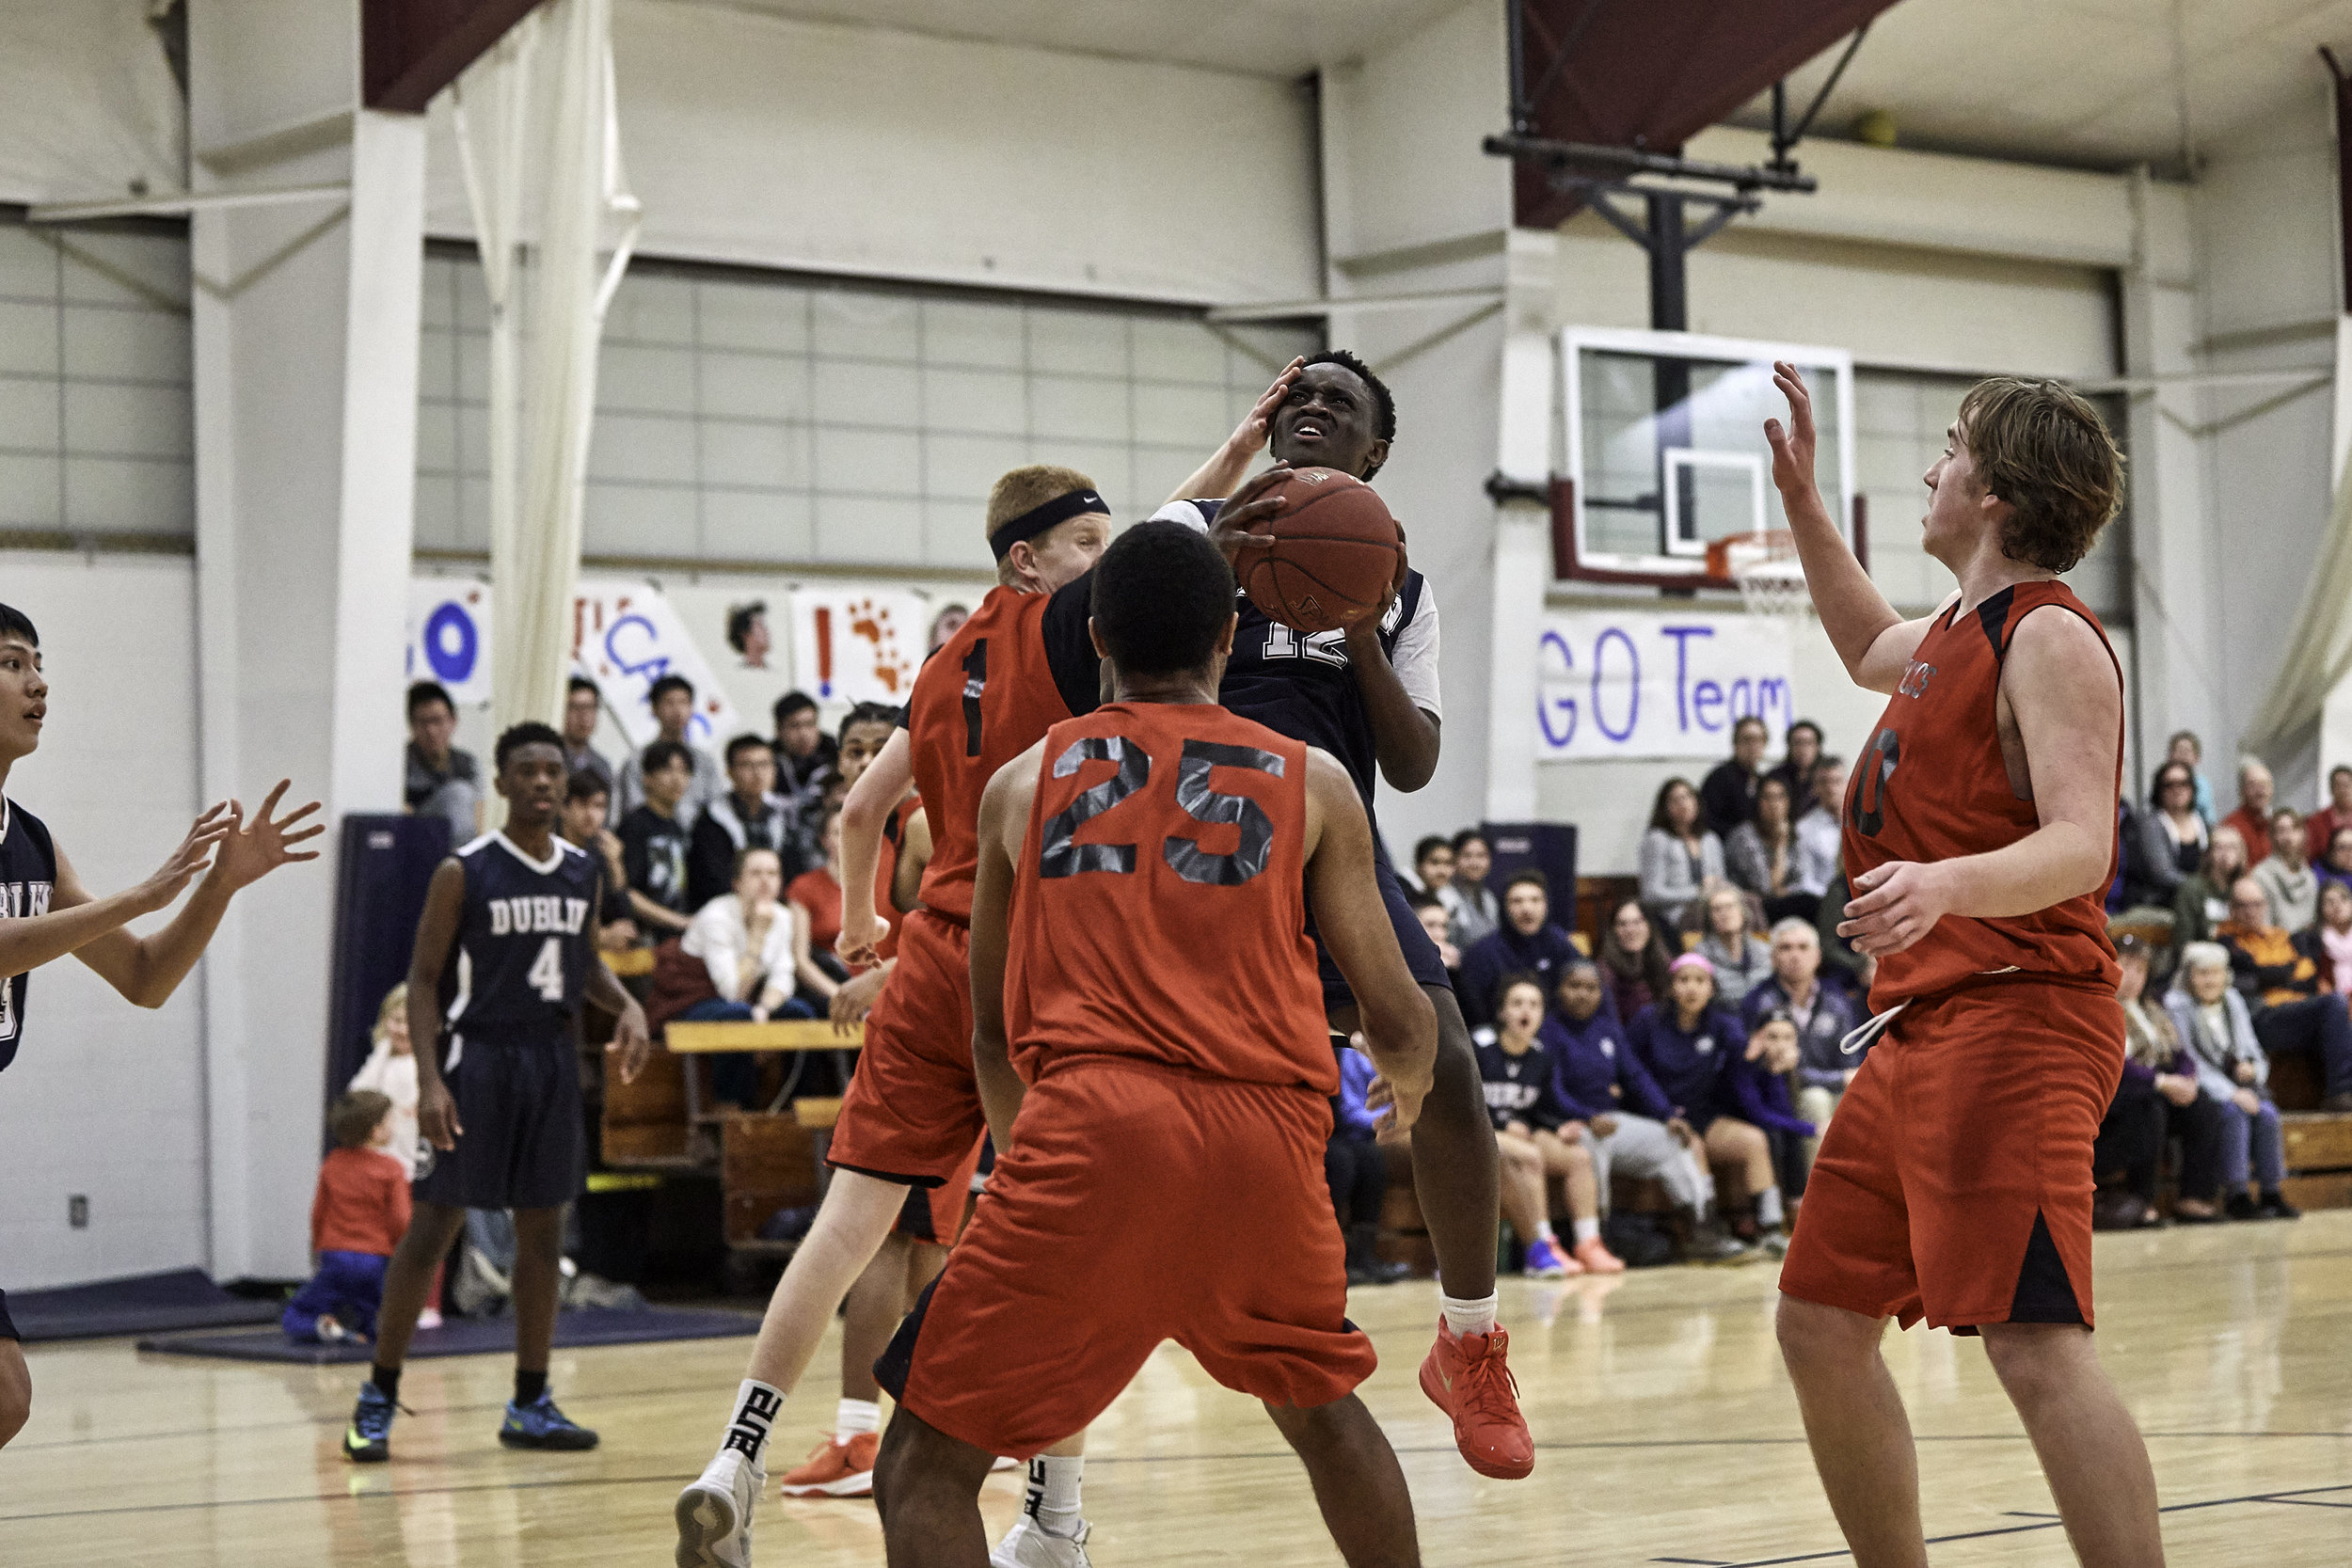 RVAL Championship Game - February 14, 2019 - 168685.jpg